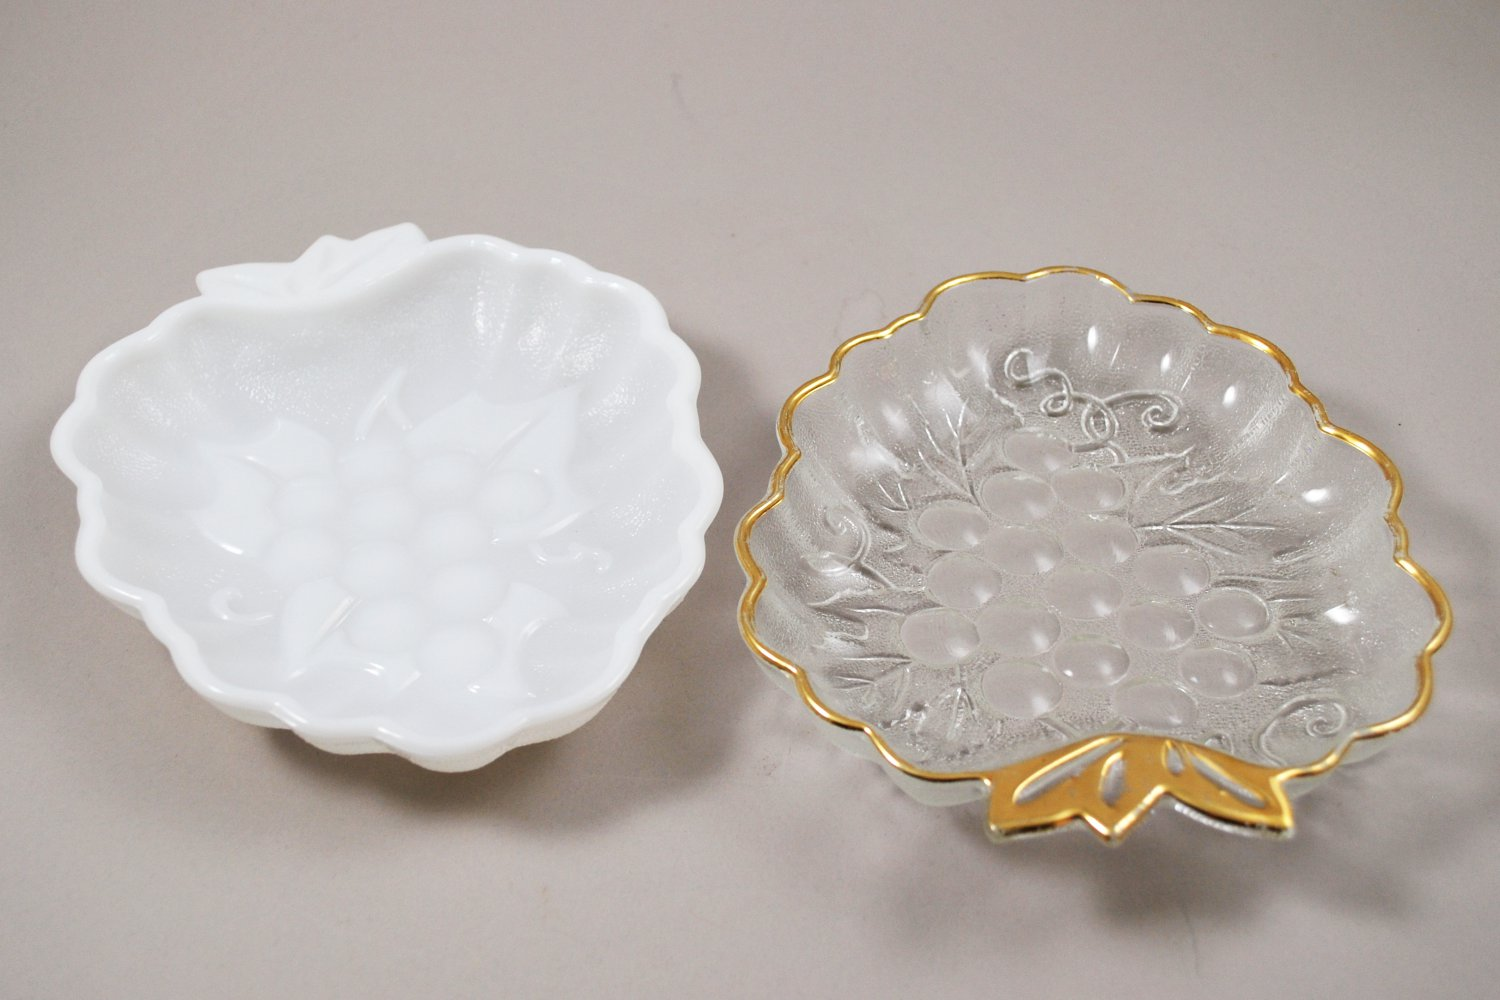 Pair of Vintage Hazel Atlas Grape No. 692 Relish Dishes Milk Glass & Clear w/ Gold Trim